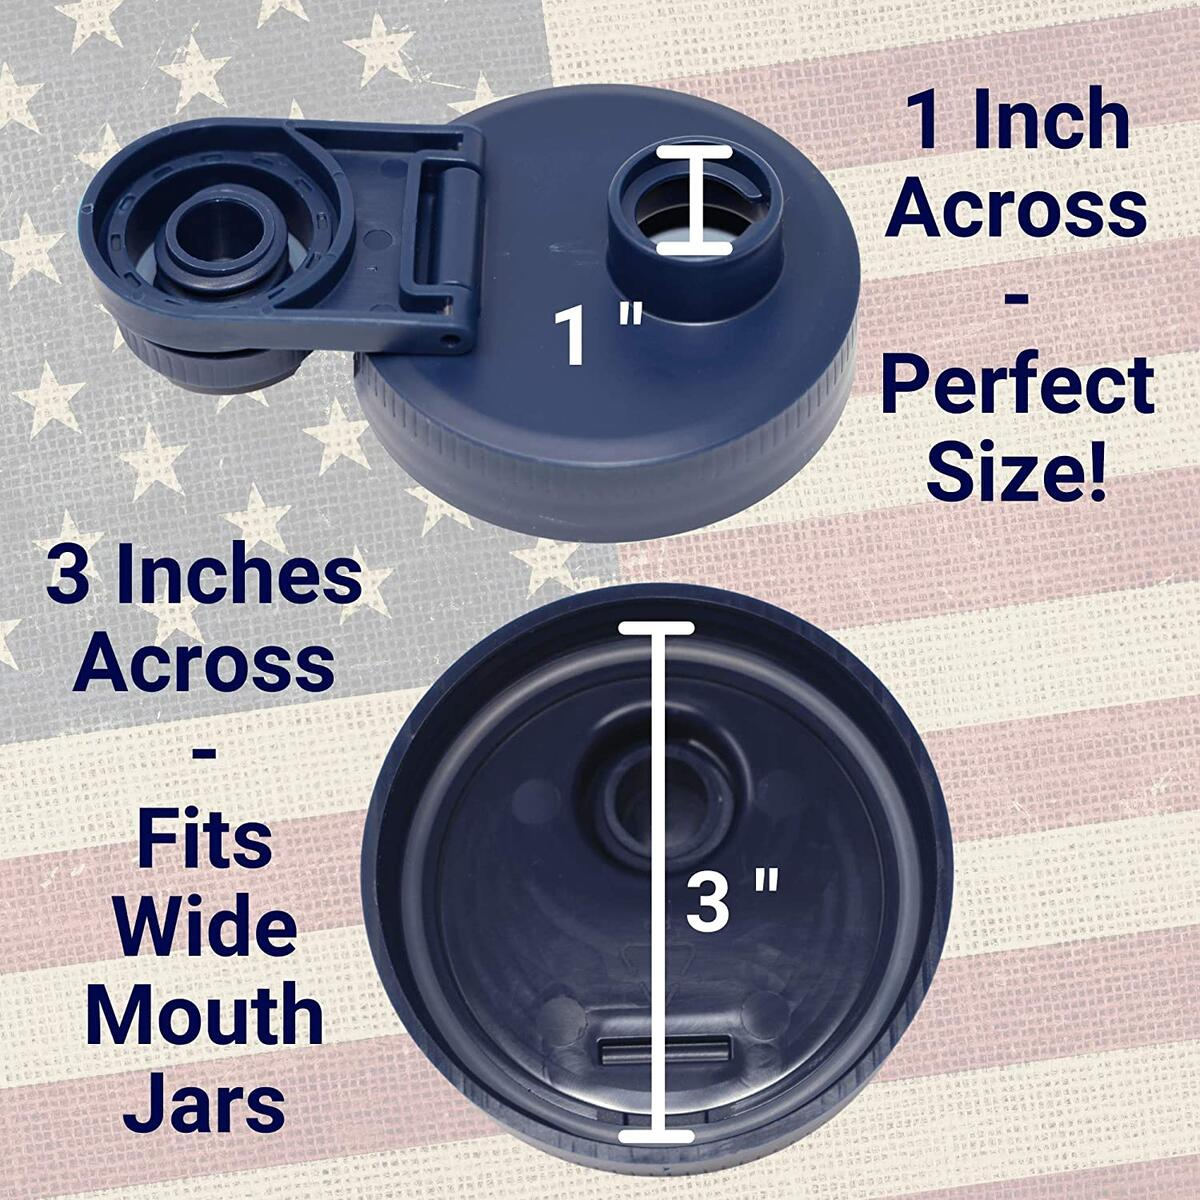 Mason Jar Lids Wide Mouth Plastic - Blue 4-pack With Flip Cap Pouring Spout and Drink Hole - Fits Kerr and Ball Canning Jars - Wet/Dry Food and Liquid Storage - MADE IN USA - Blue 4pack